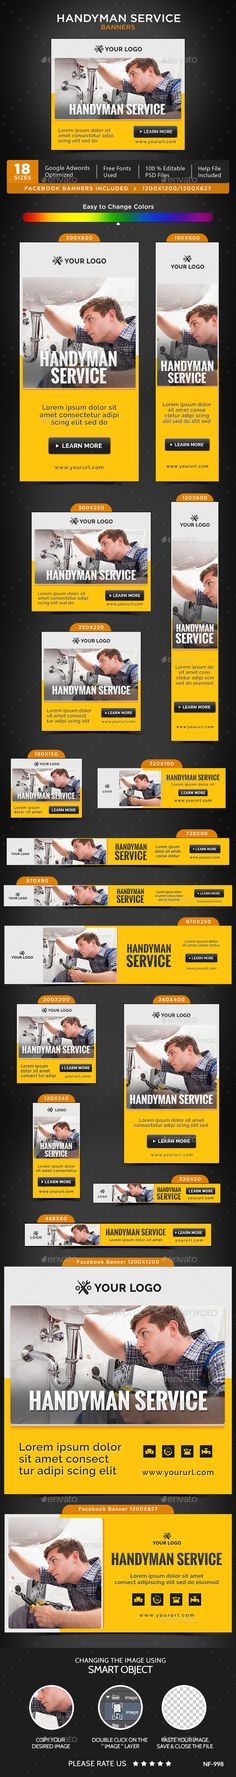 Handyman Service Banners  Banners Font Logo And Fonts